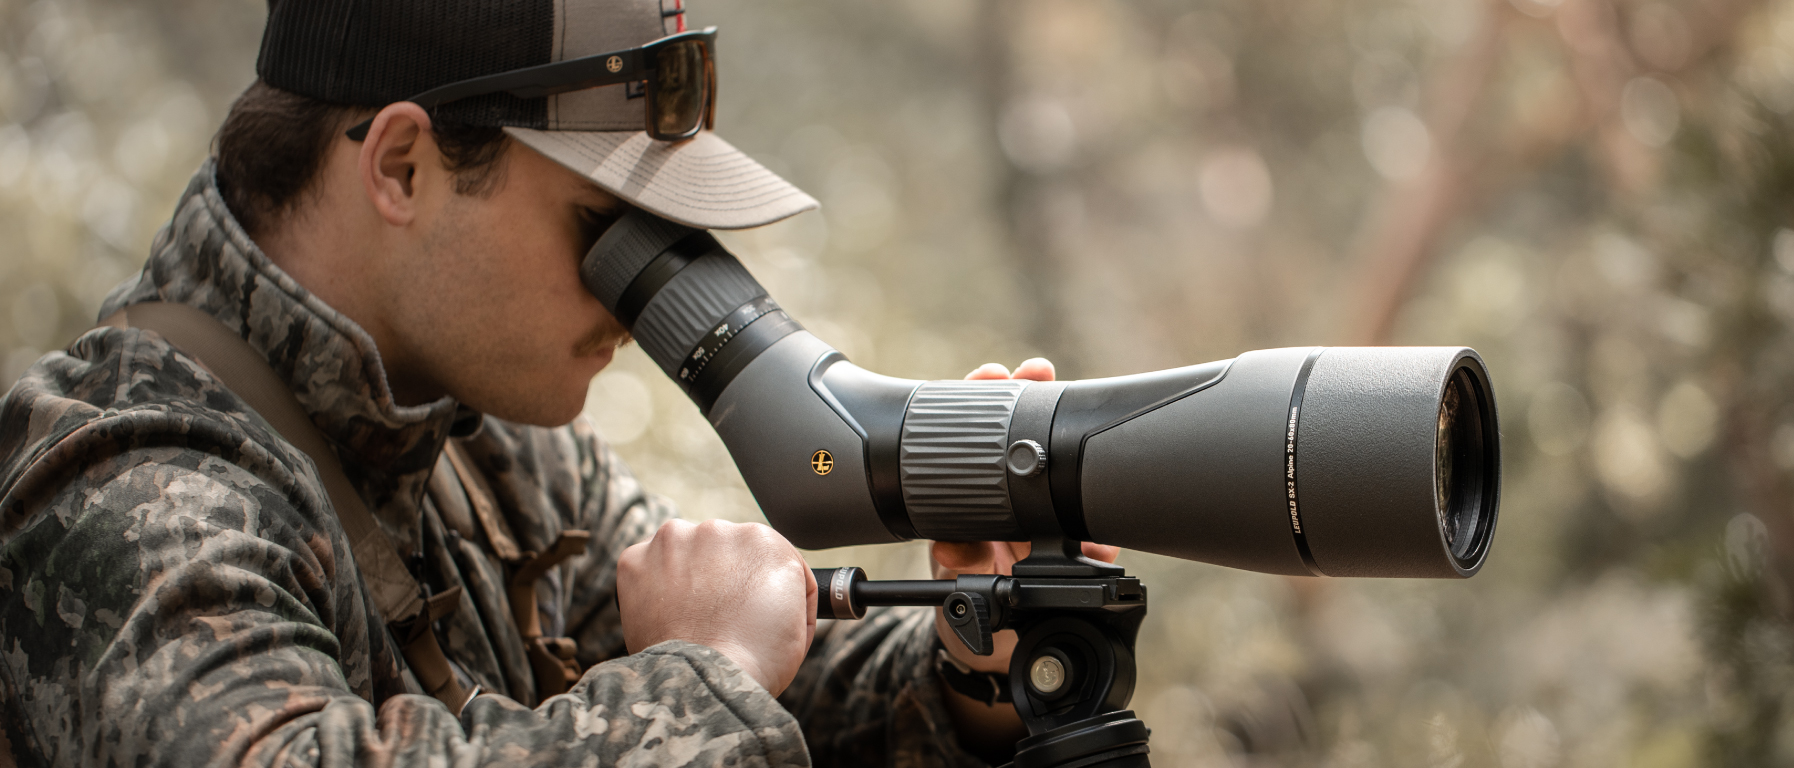 Introducing The SX-2 Alpine HD Spotting Scope